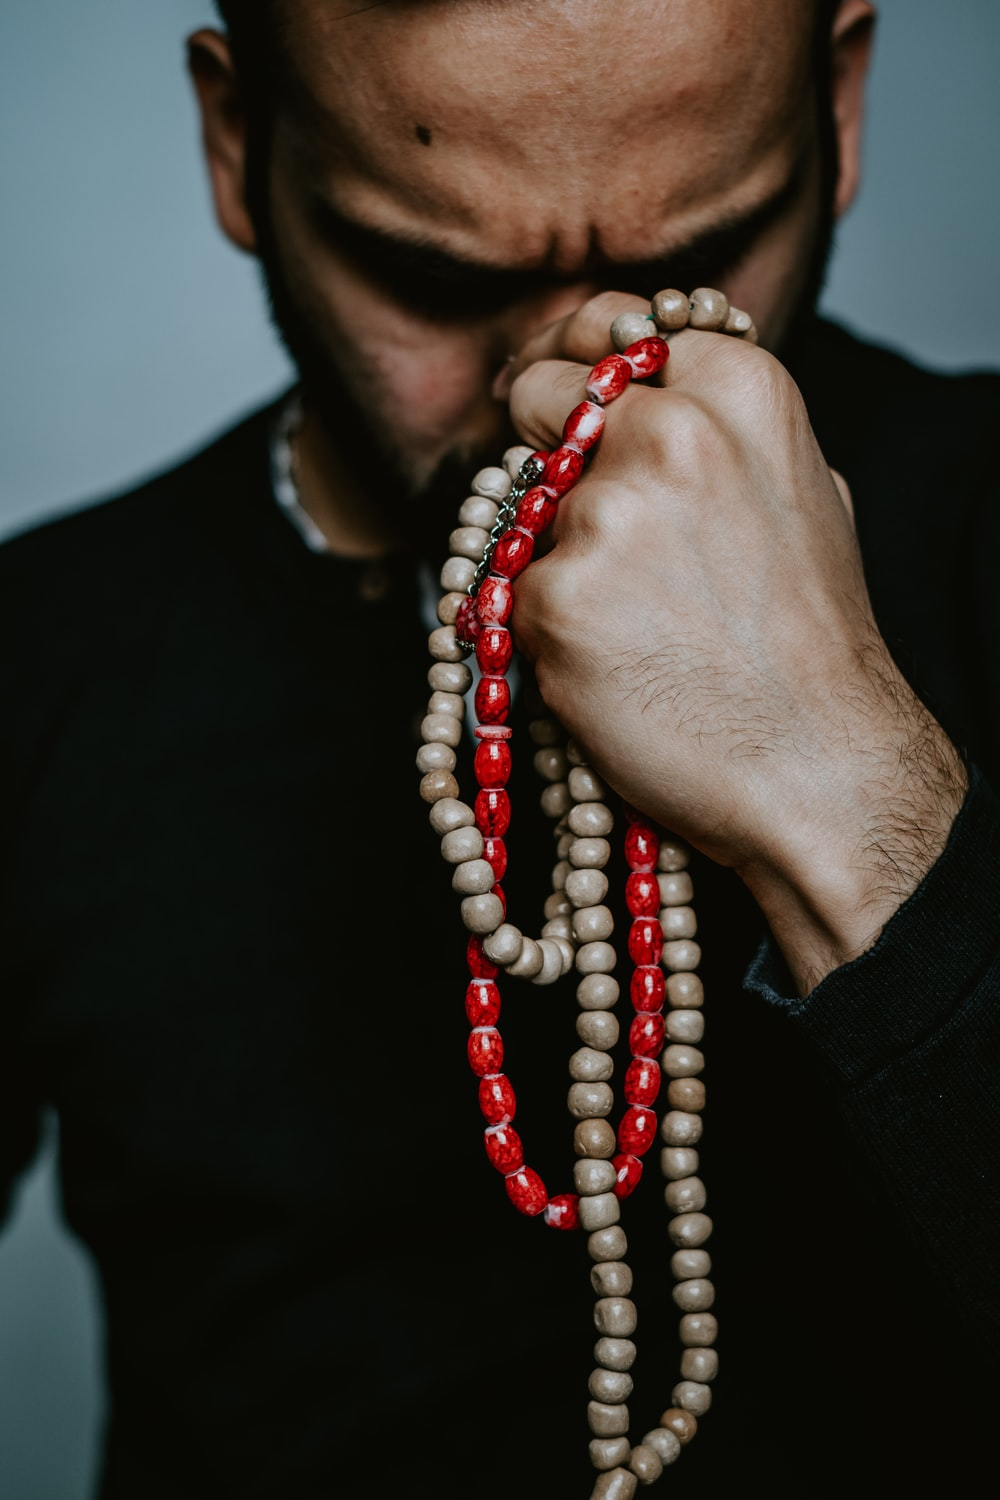 person wearing red beaded bracelet